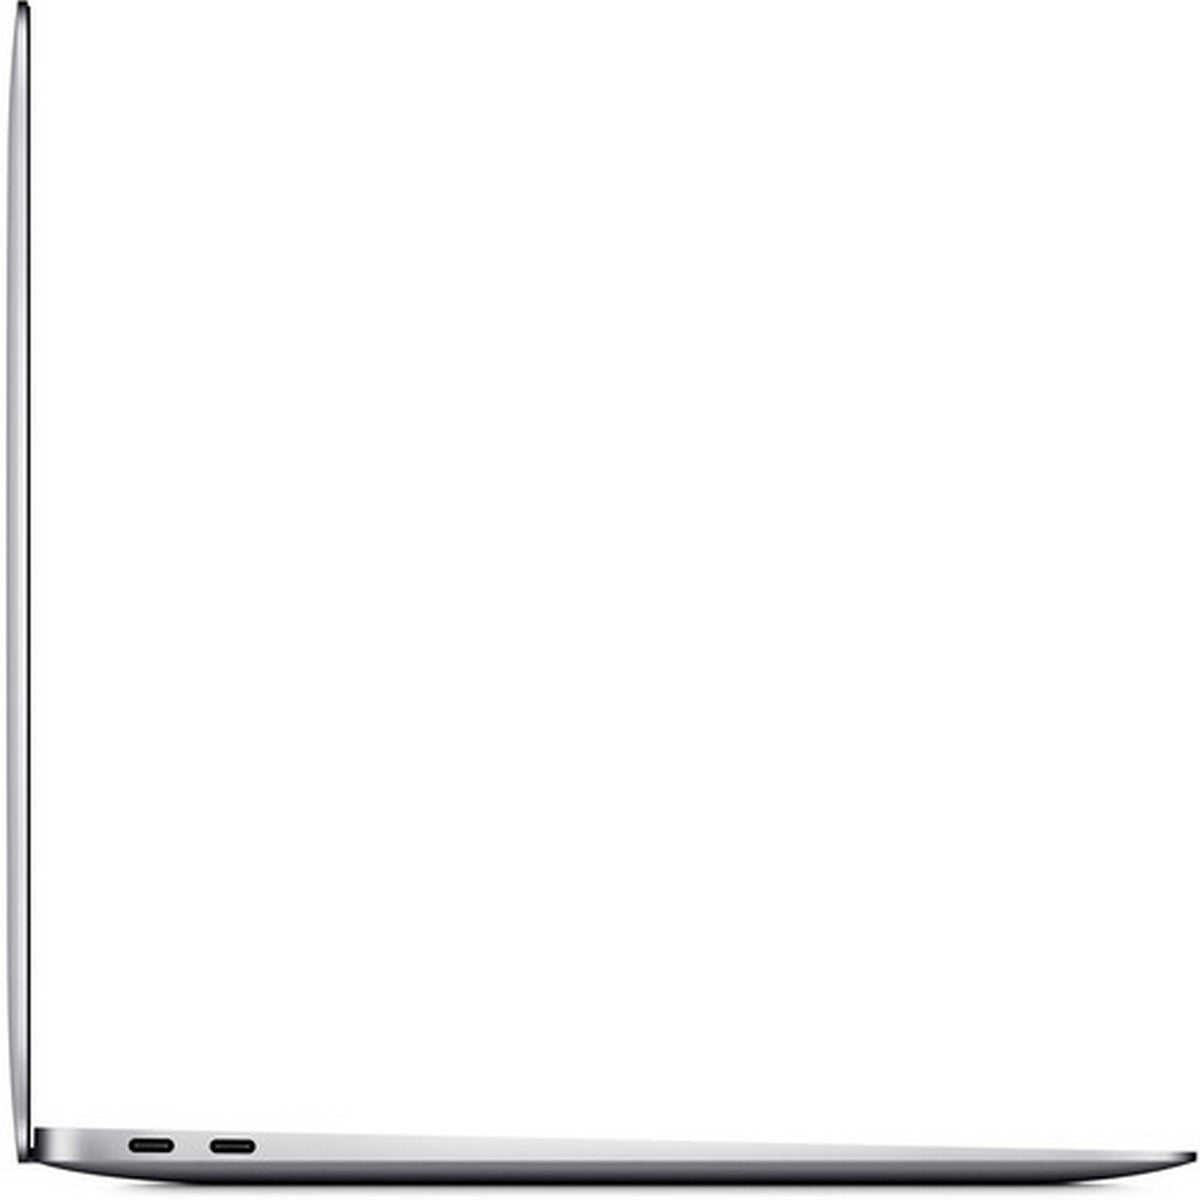 Apple MacBook Air (Early 2020) Laptop 13.3'' Retina display , Intel Core i3 i3-1000NG4, 8GB RAM, 256GB SSD, Backlit Keyboard,Touch ID, MacOS, English Keyboard, Silver